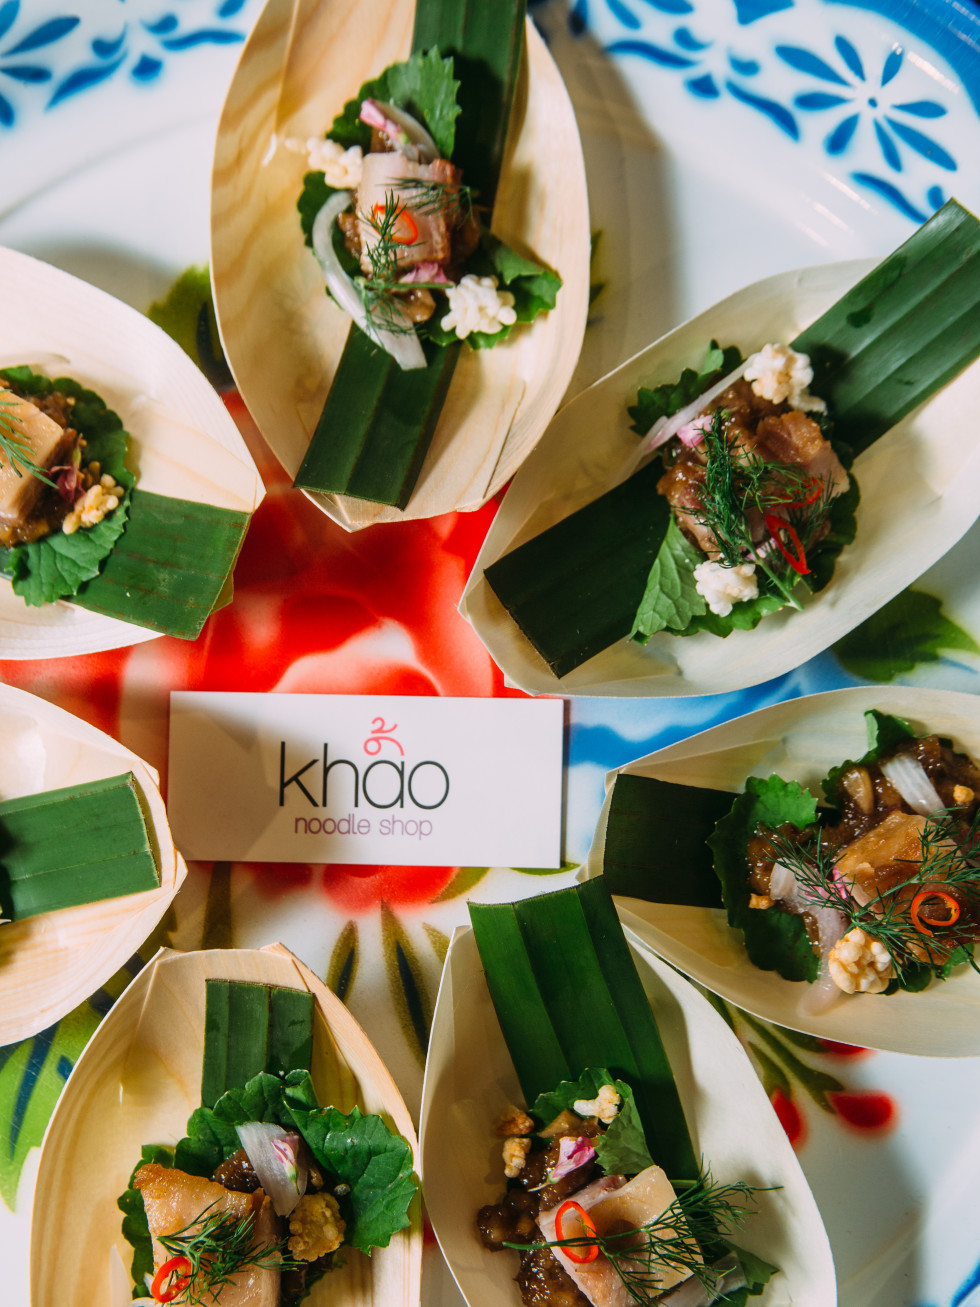 Khao Noodle Shop, Tastemaker Awards Dallas